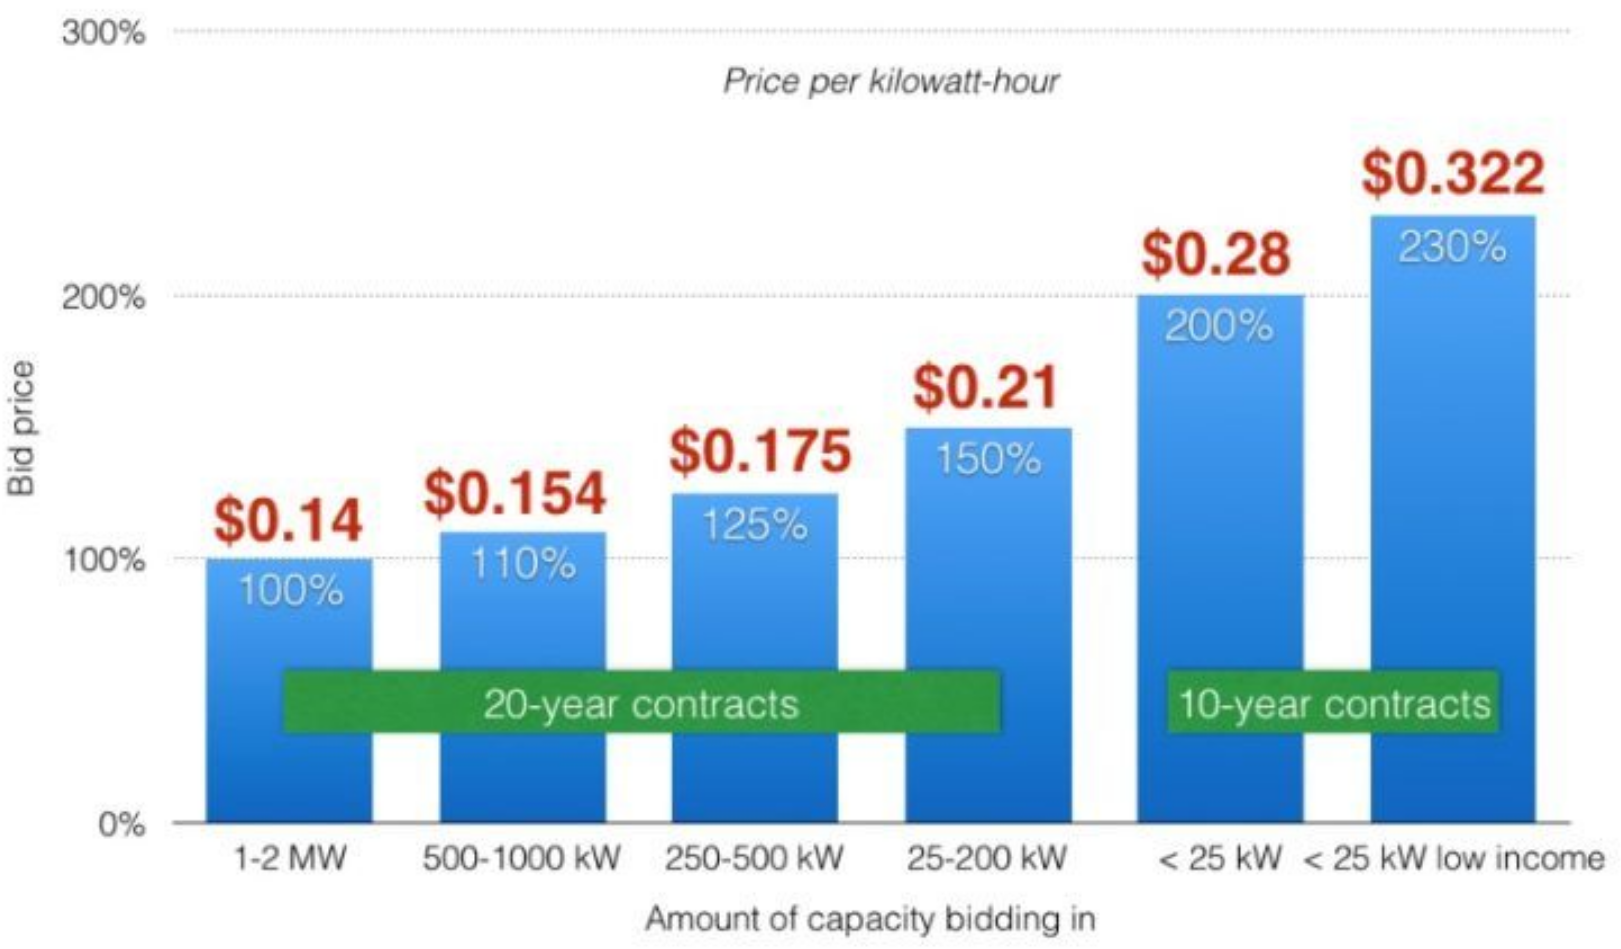 Mass smart tariff contract prices